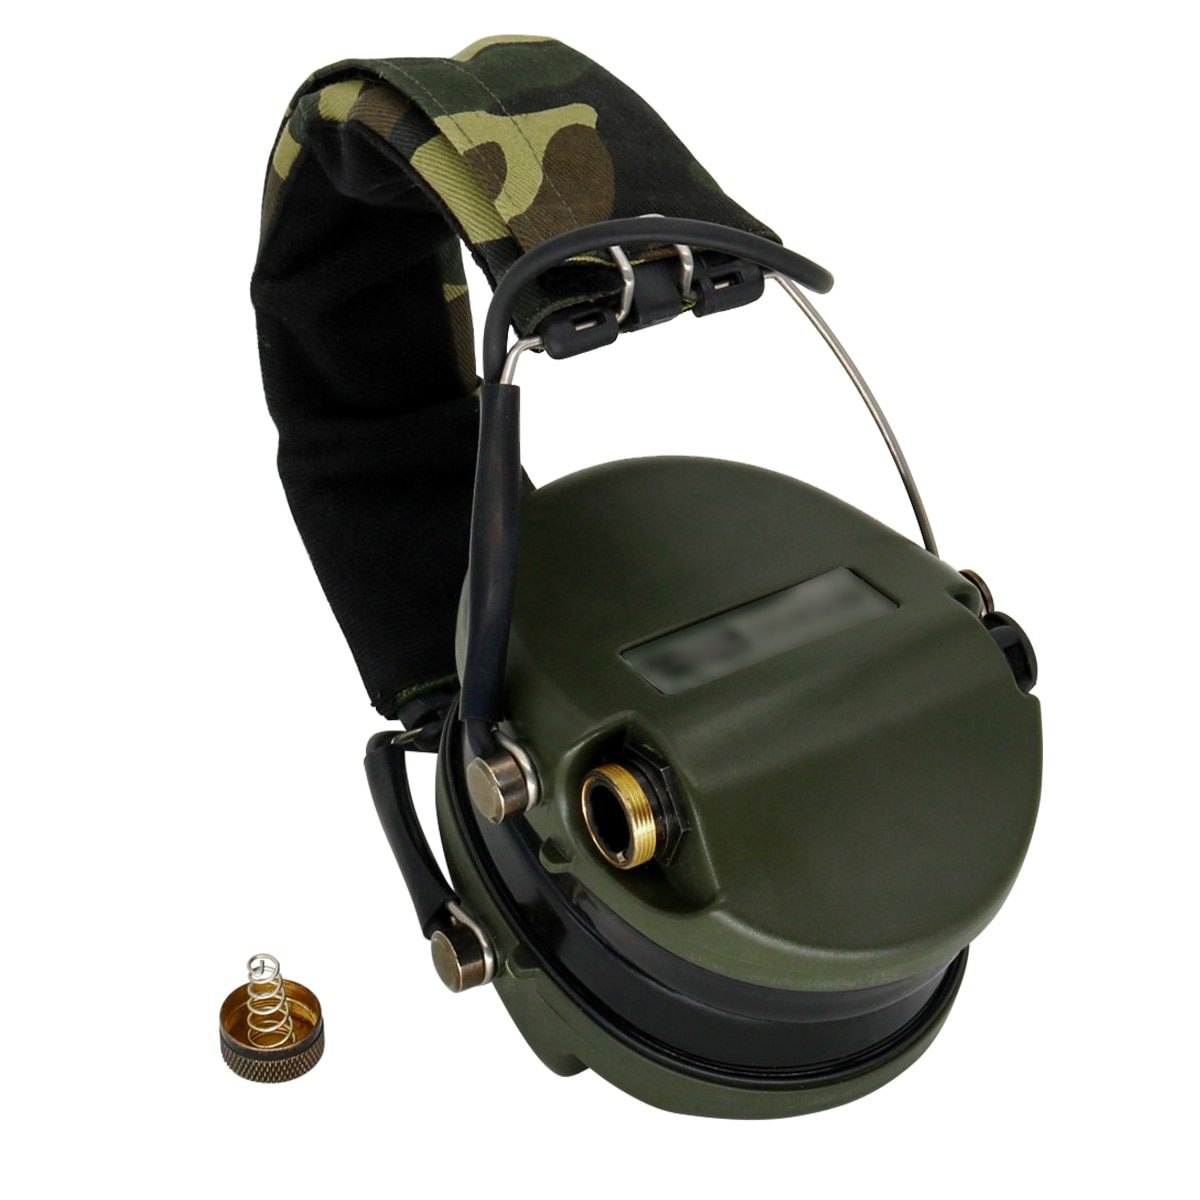 No microphone tactical noise reduction pickup hunting headset protective earmuffs electronic shooting headset FG enlarge